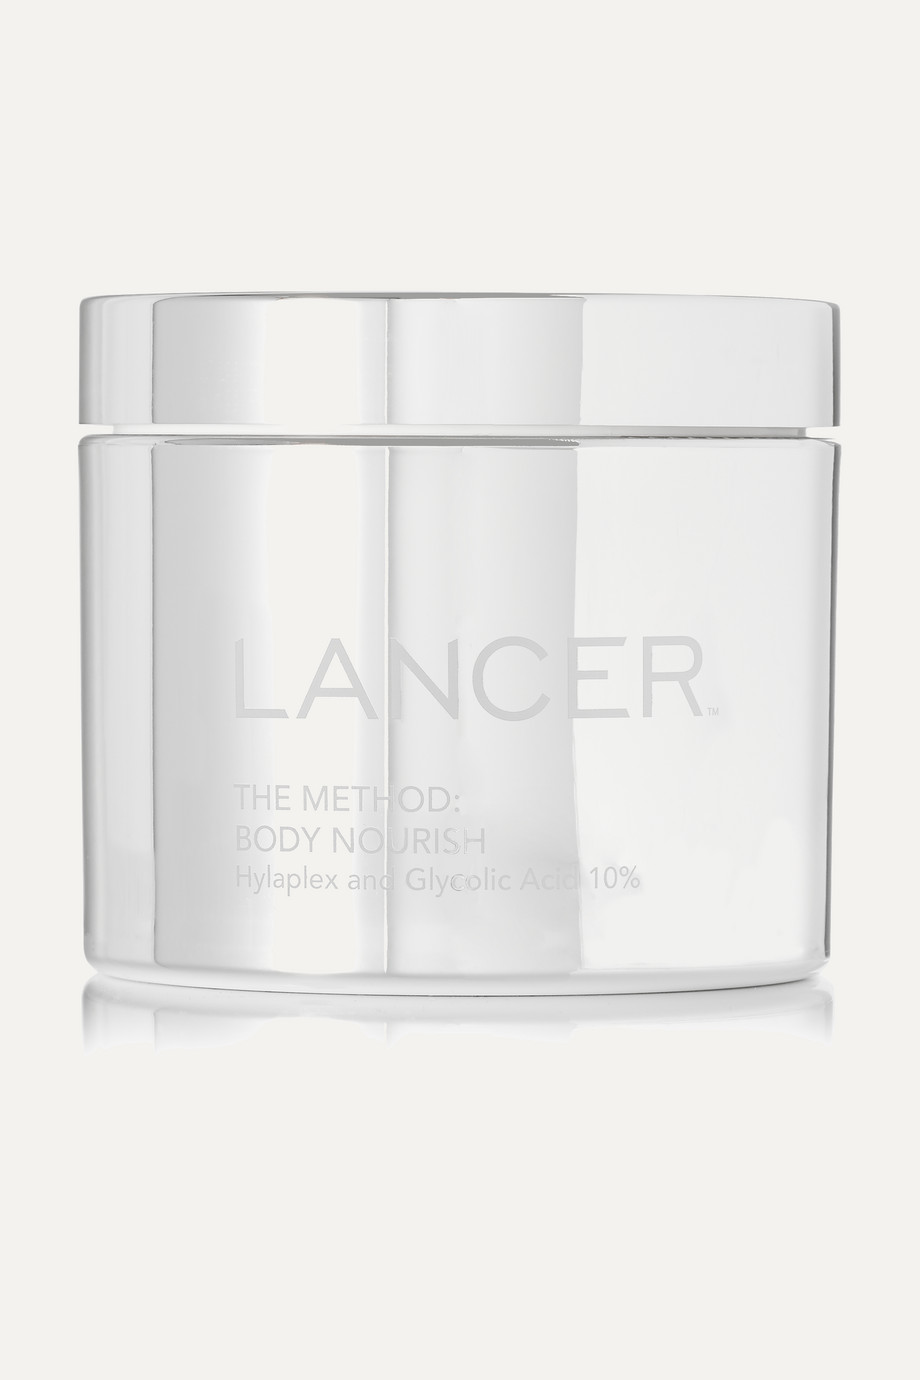 LANCER The Method: Body Nourish, 325ml